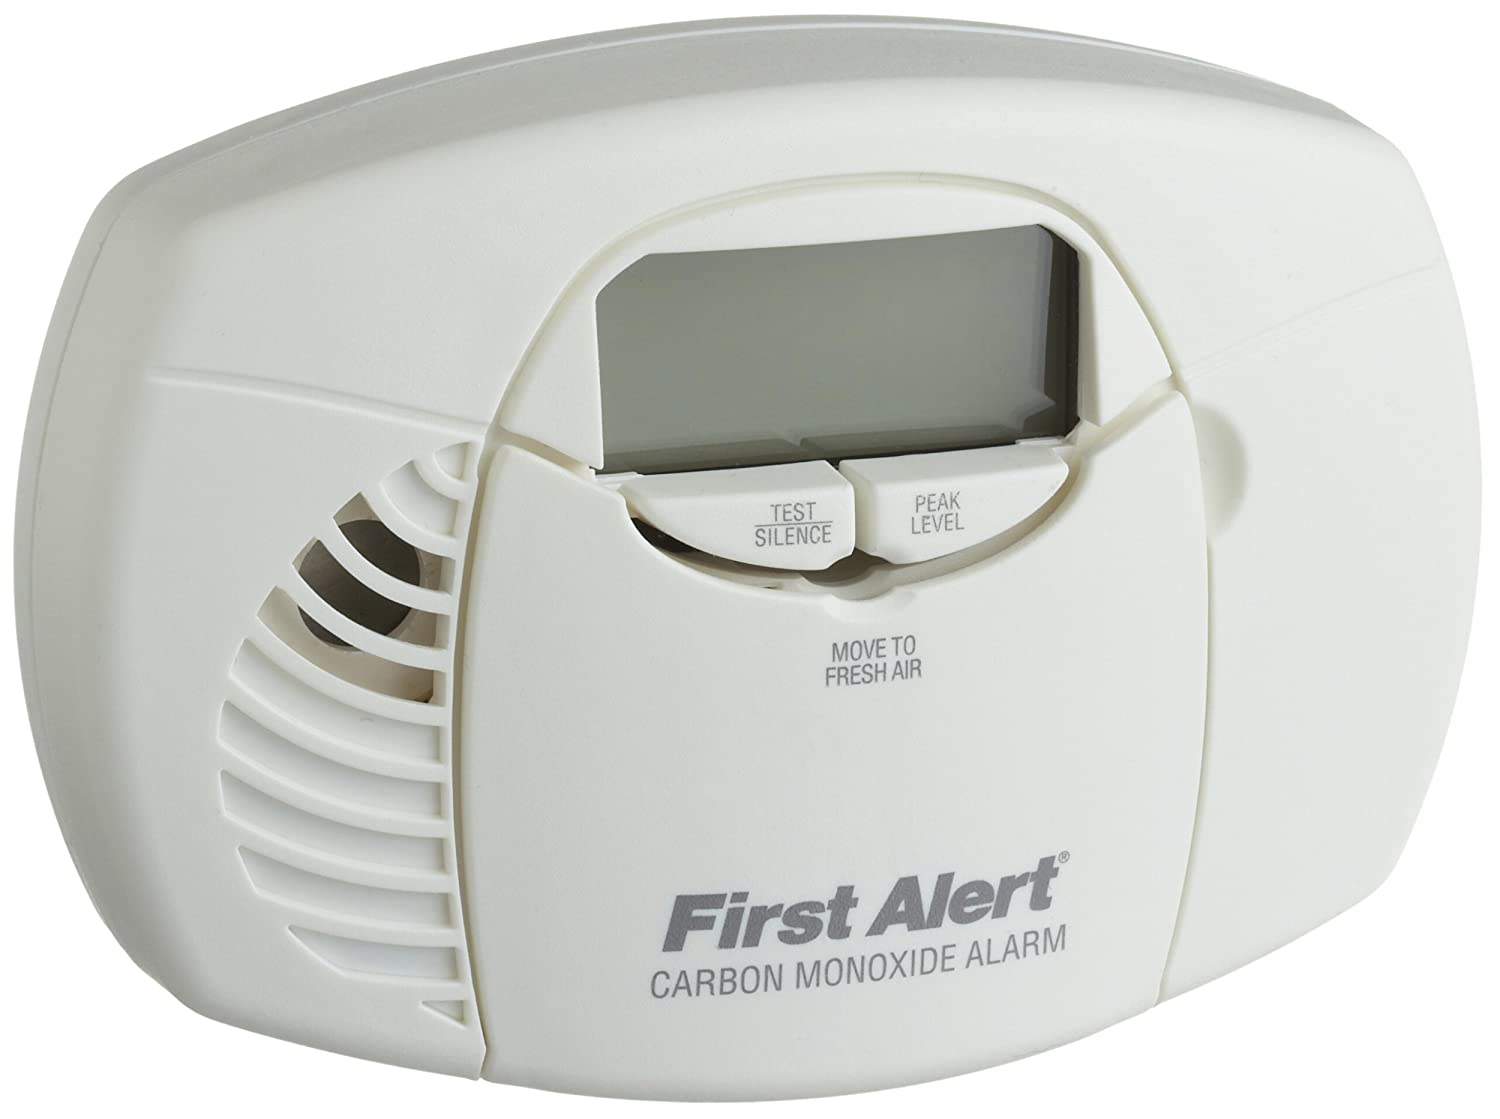 50 Best Carbon Monoxide Detectors Reviews Prices More Low Cost Burglar Alarm For Boats This Battery Powered Features An Easy To Read Digital Display Let You Know What The Co Level Is In Your Home